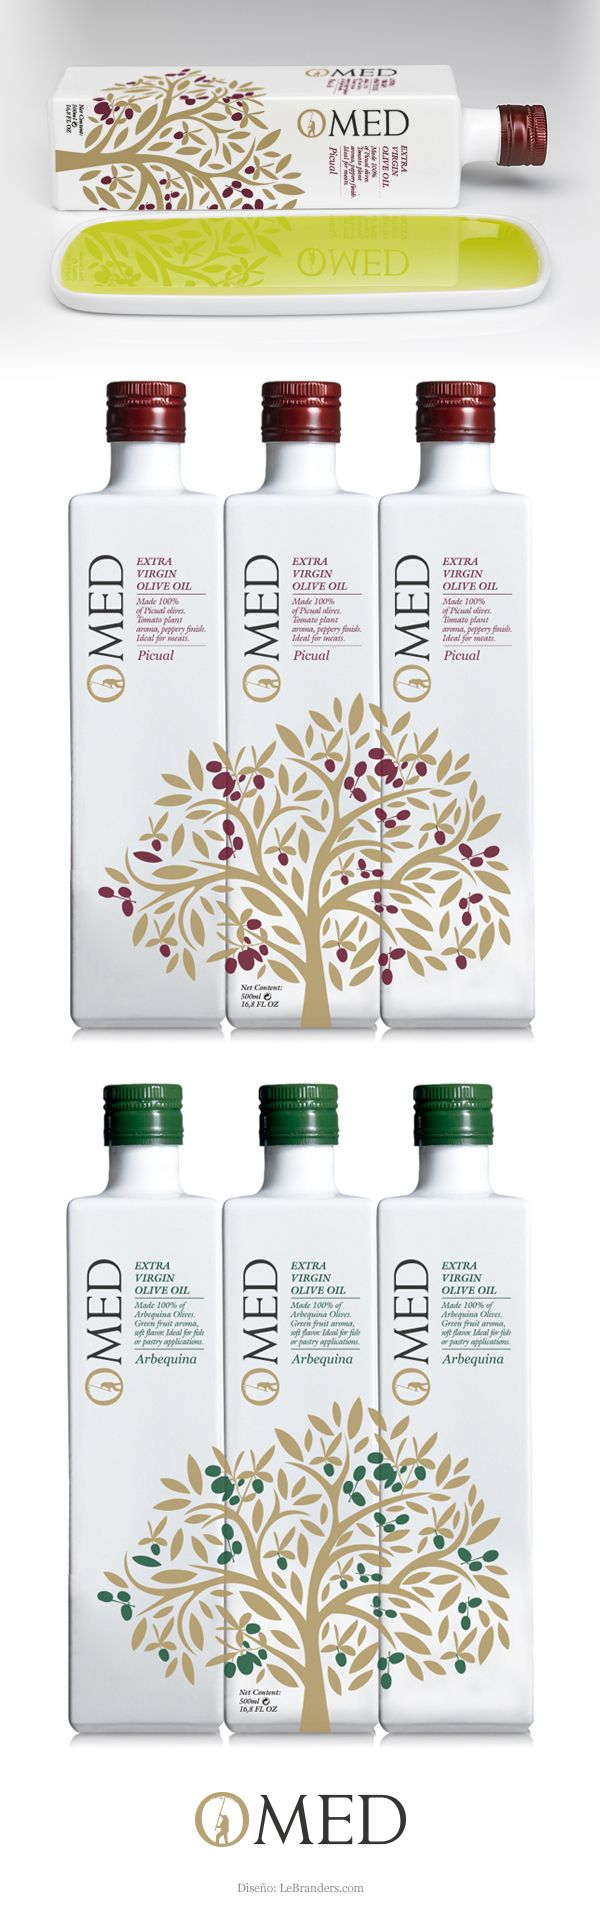 Packaging para el 10º Aniversario de Omed - Designed by LeBranders. Nice olive oil packaging designs PD